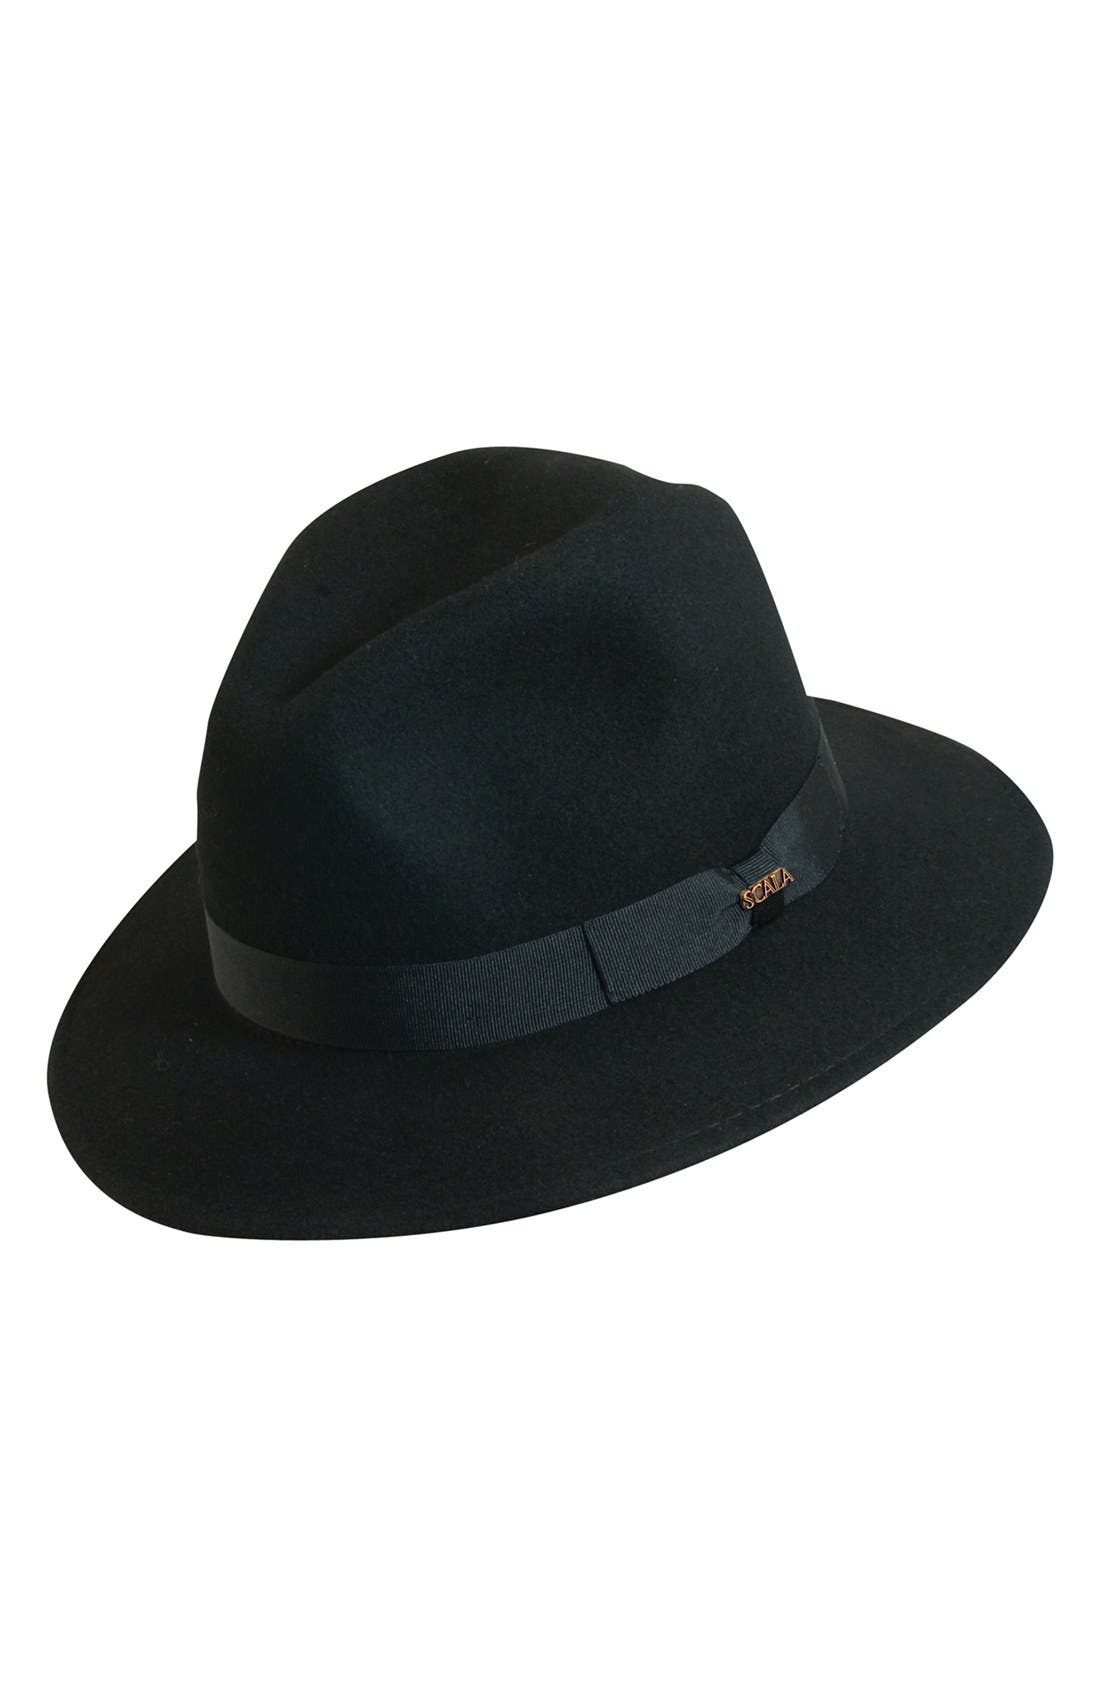 'Classico' Crushable Felt Safari Hat,                             Main thumbnail 1, color,                             Black